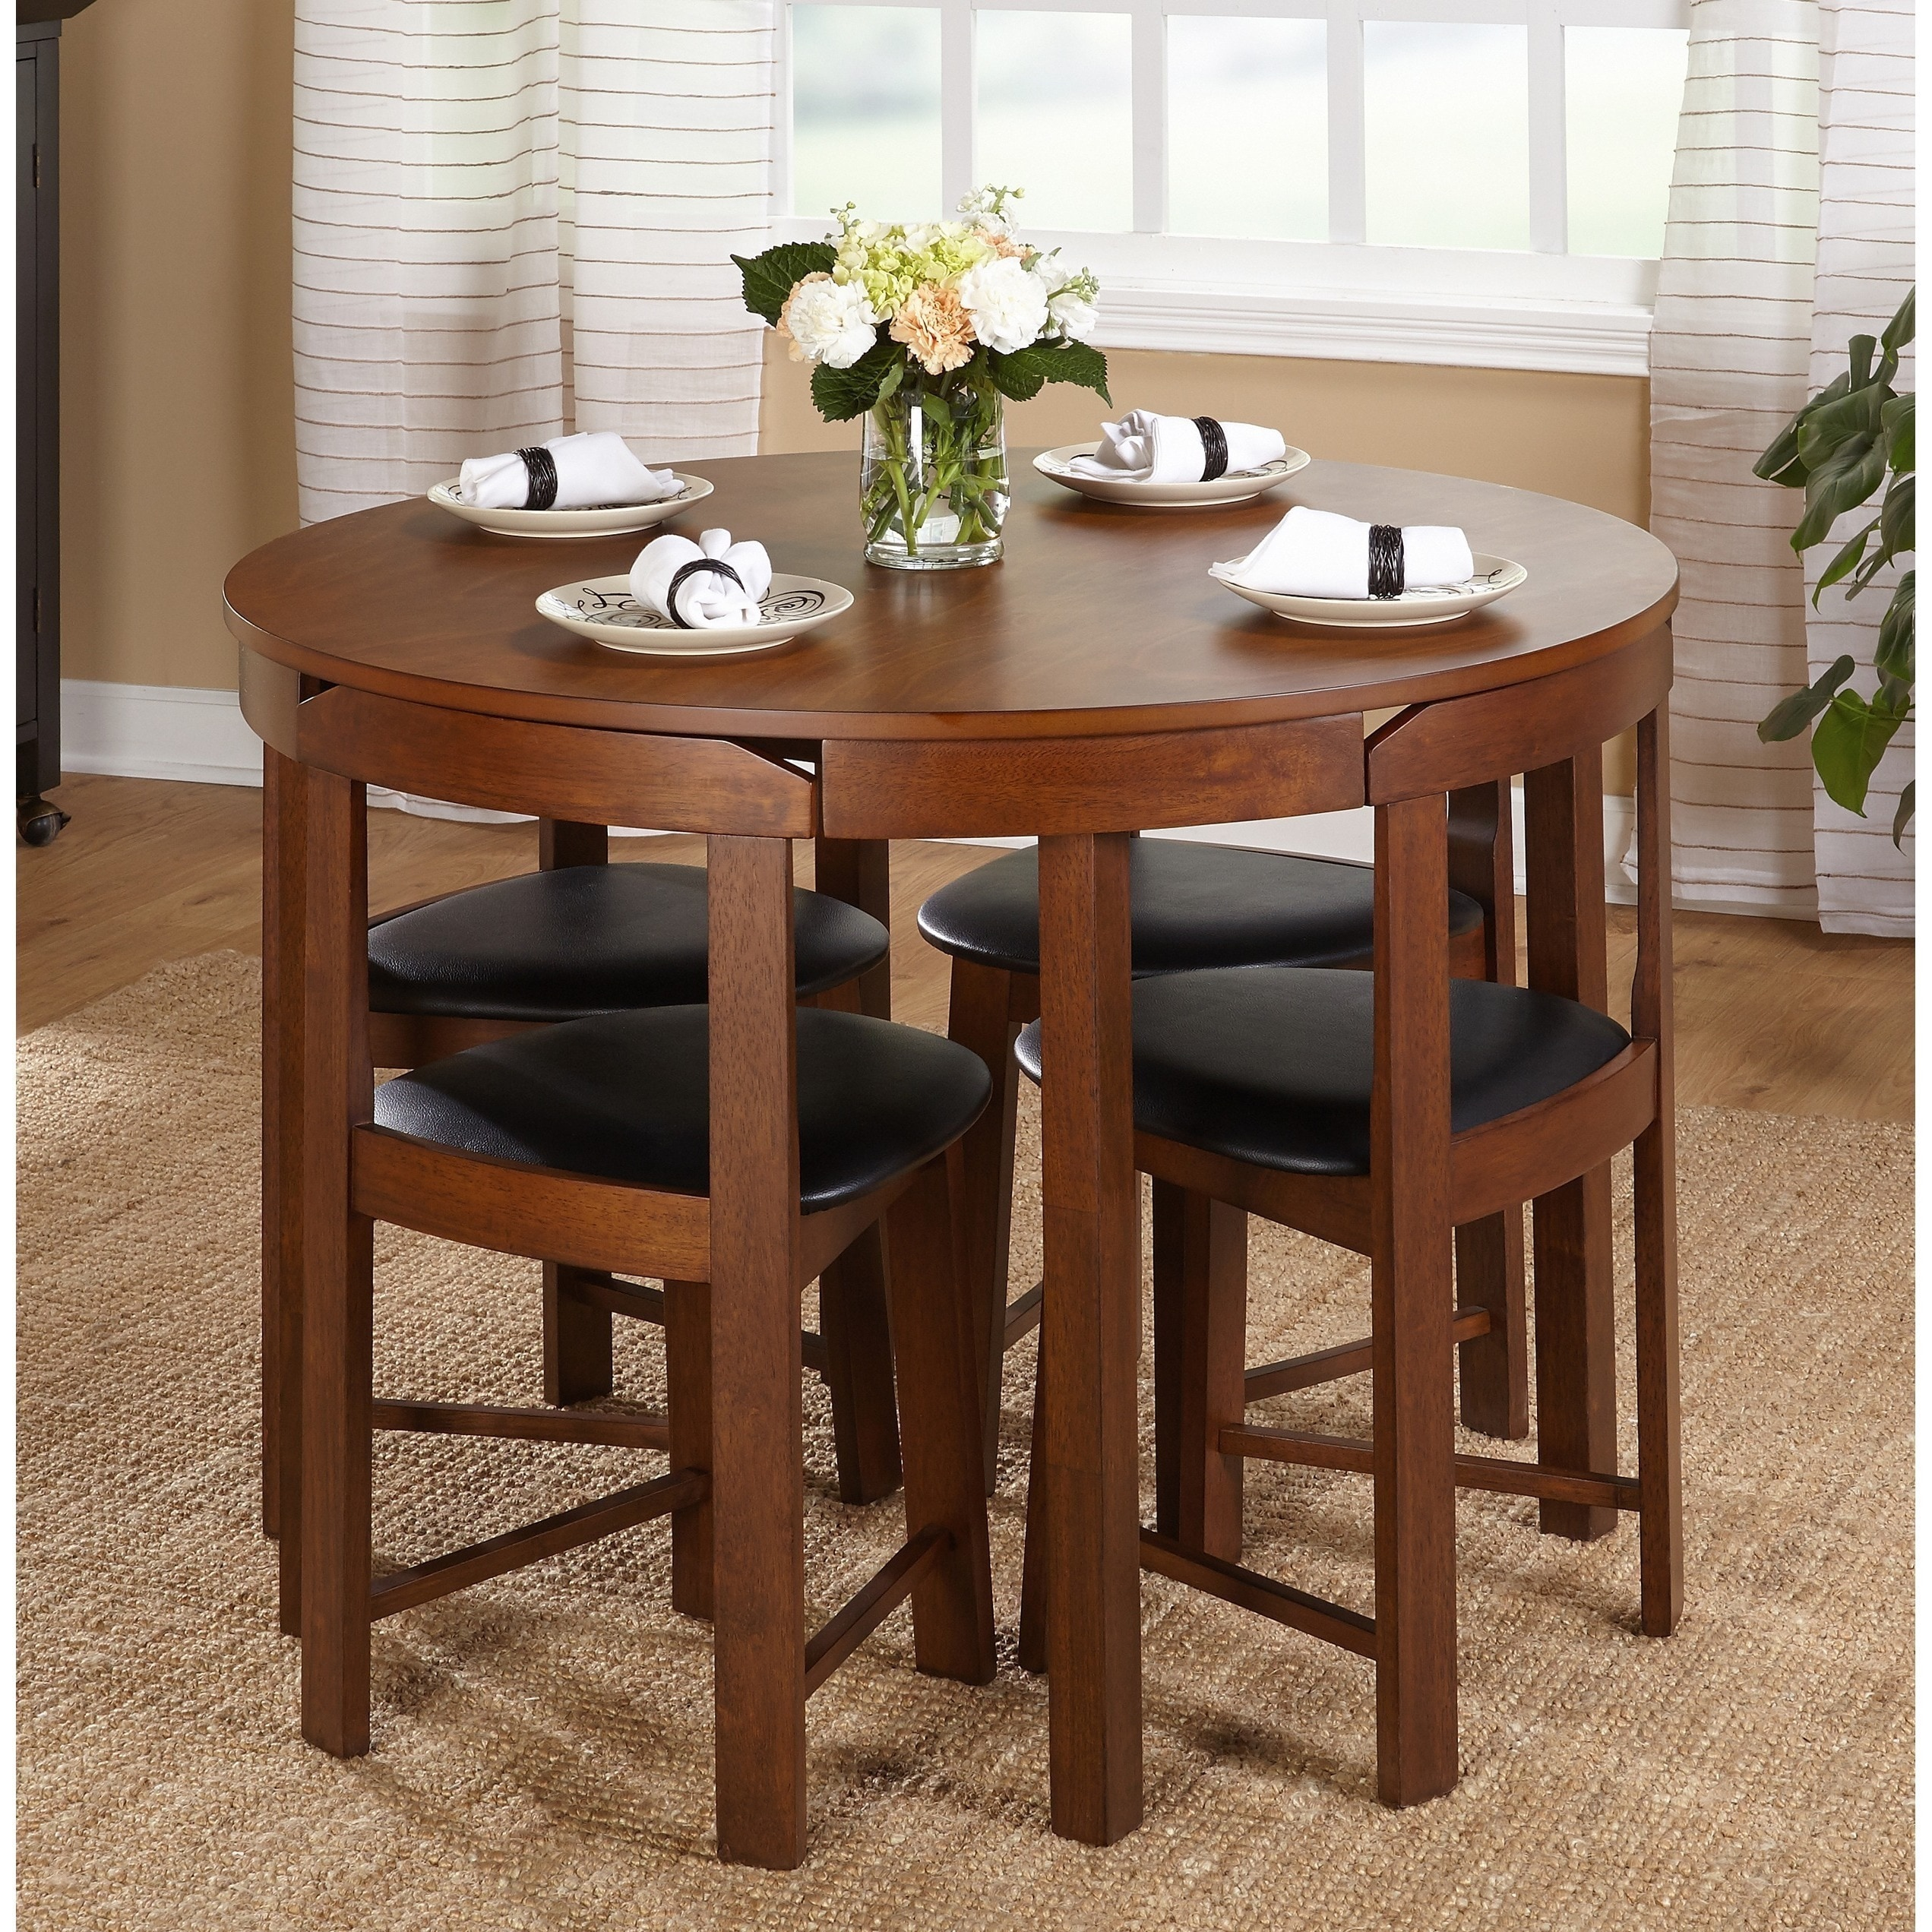 Modern Dining Room Furniture Buy Modern Contemporary Kitchen Dining Room Sets Online At